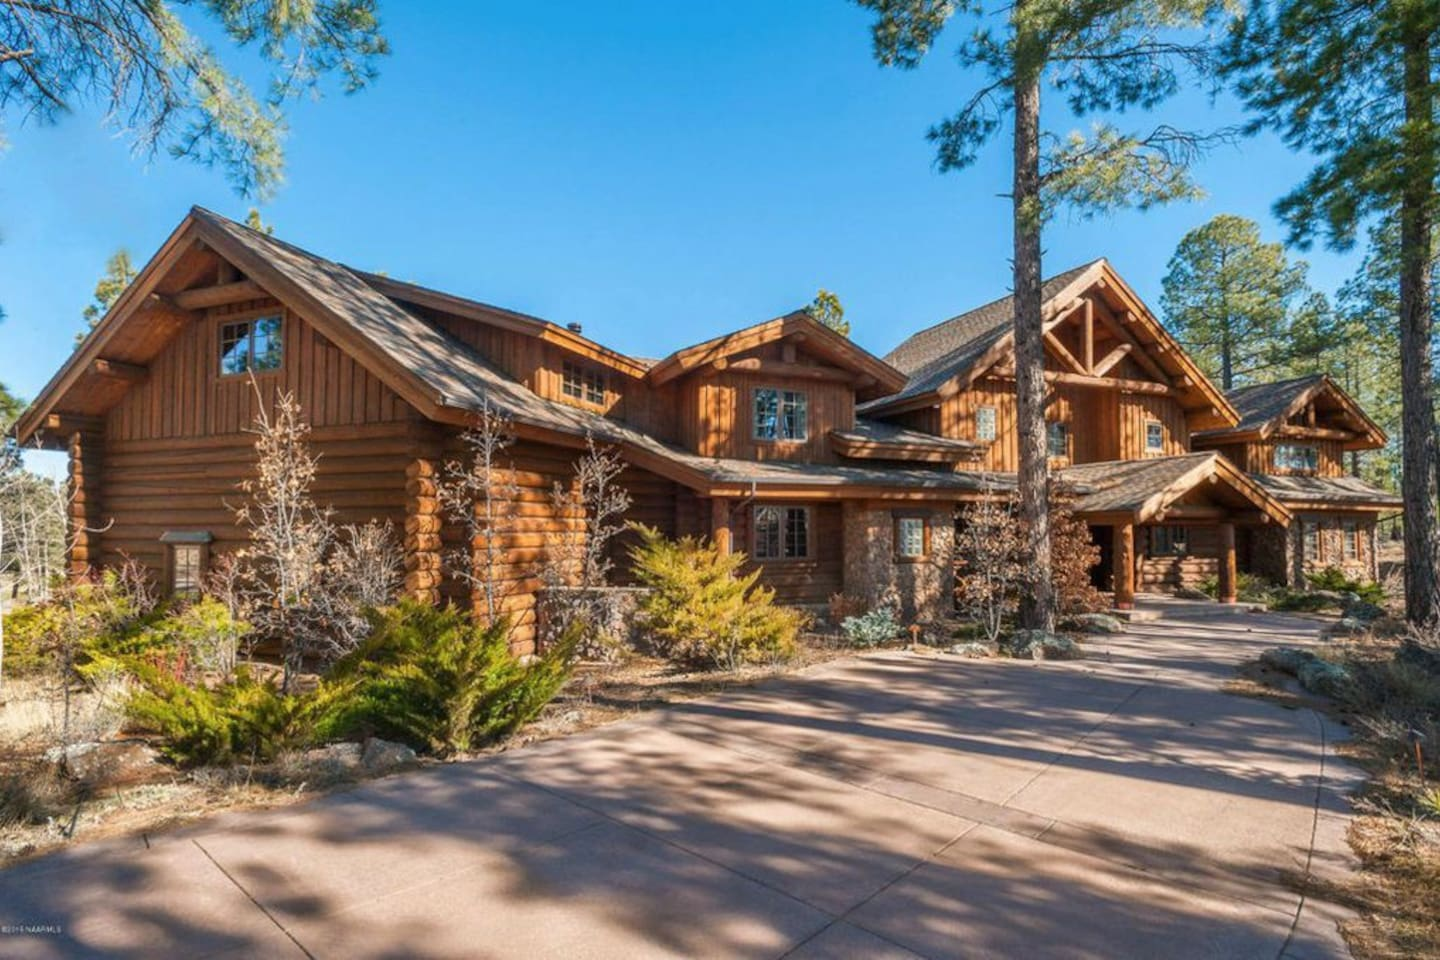 Beautiful log cabin 10 minutes from downtown Flagstaff.  Photos available upon request.